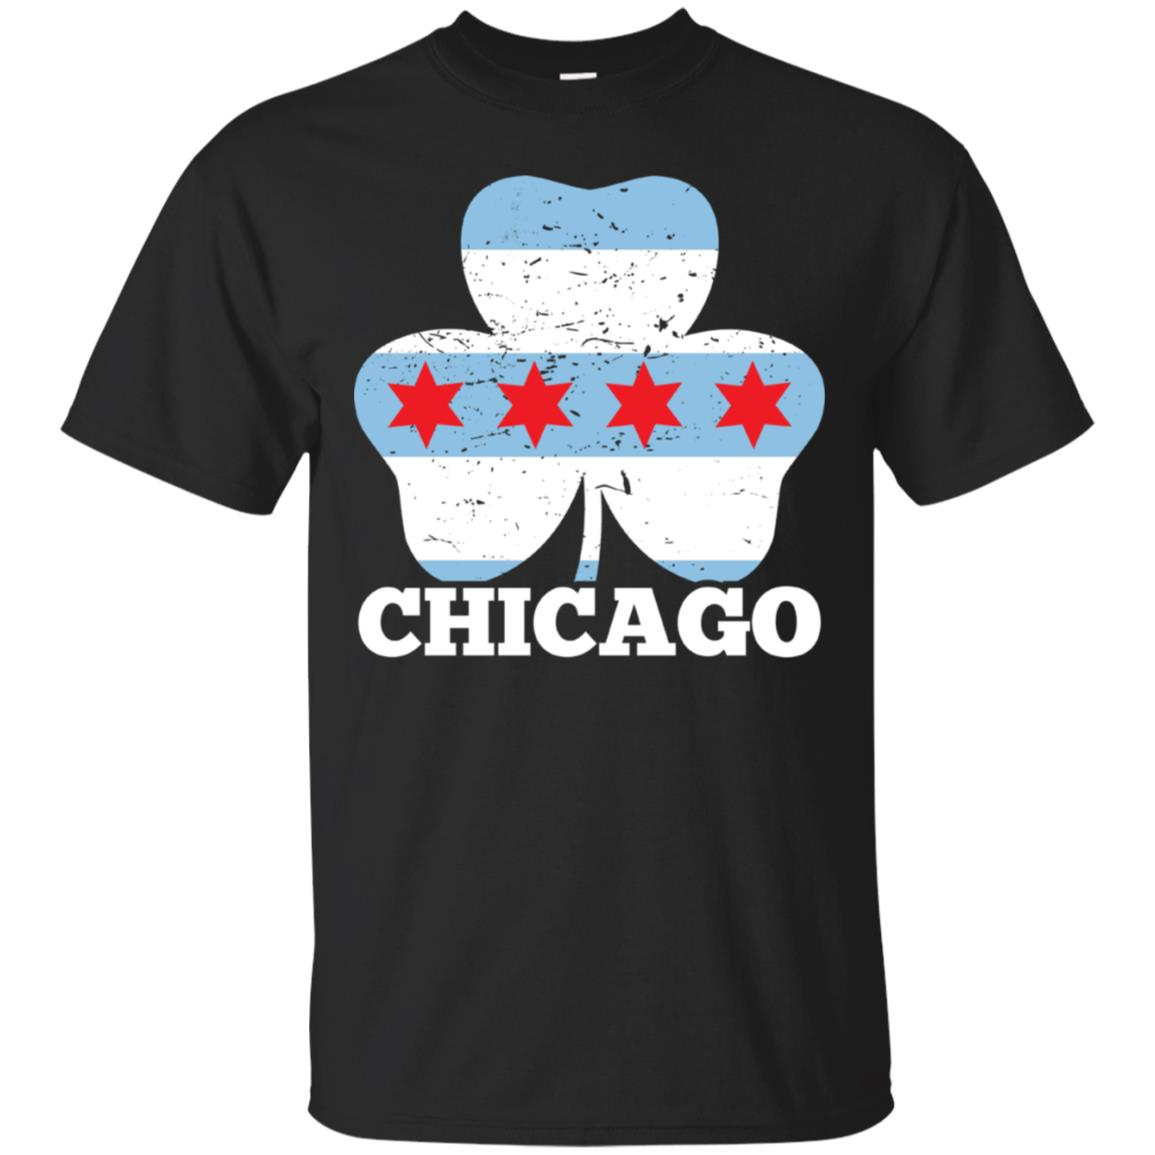 Chicago St. Patrick's Day Tshirt St. Paddy's Day Parade 99promocode